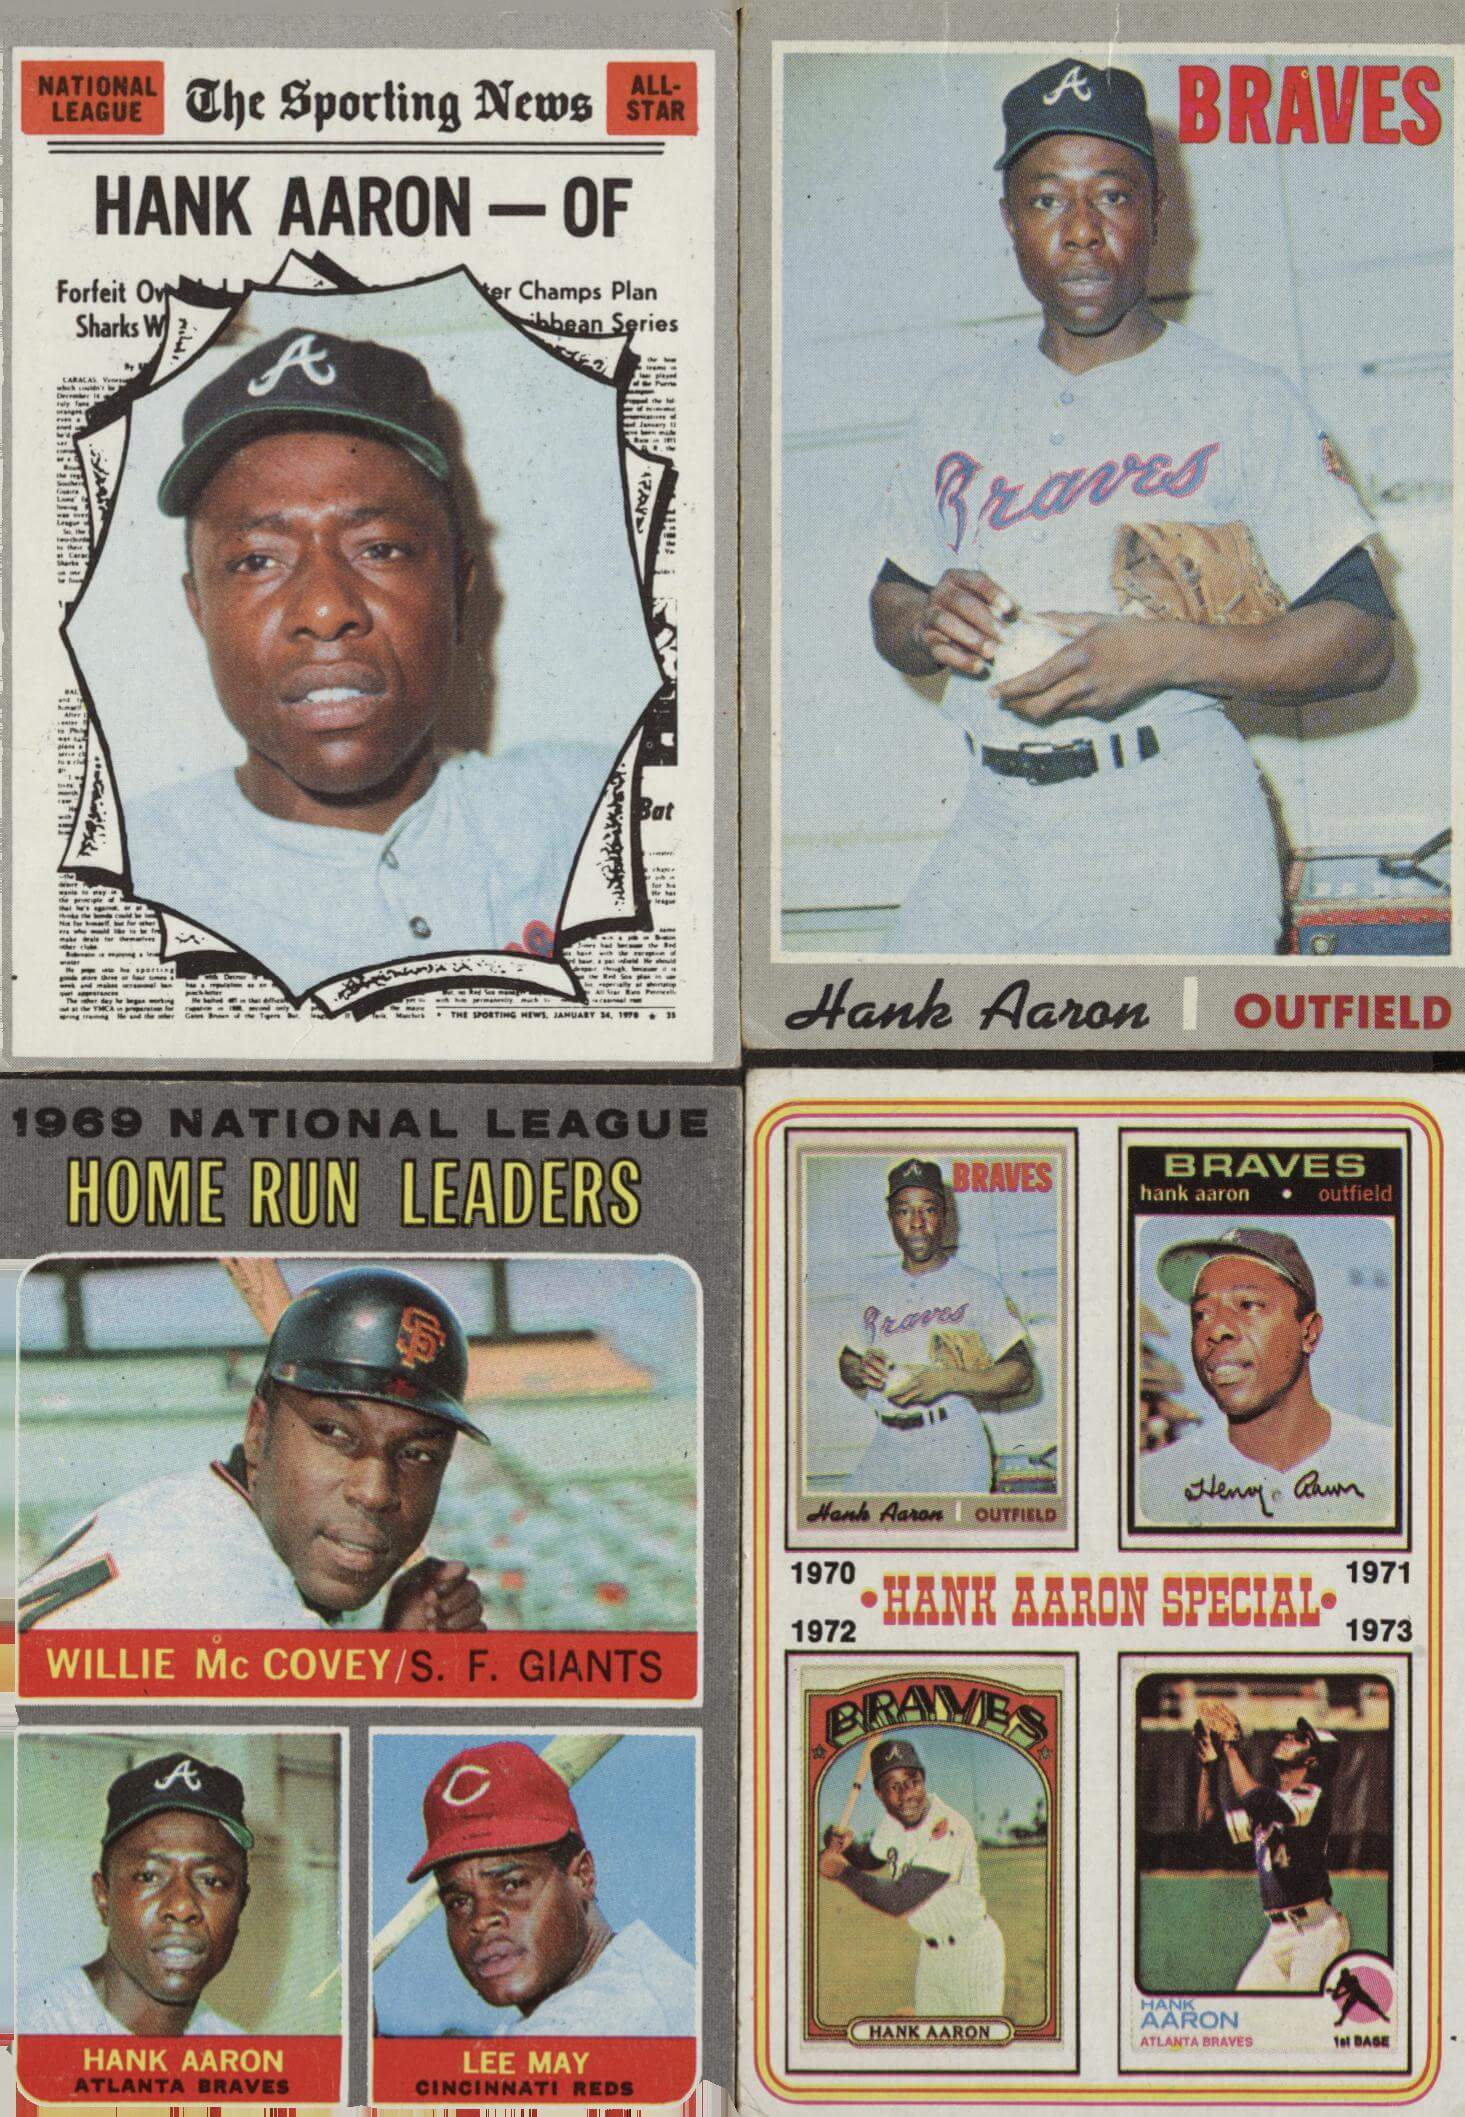 (top and bottom left) Hank Aaron 1970 Tpps (bottom right)